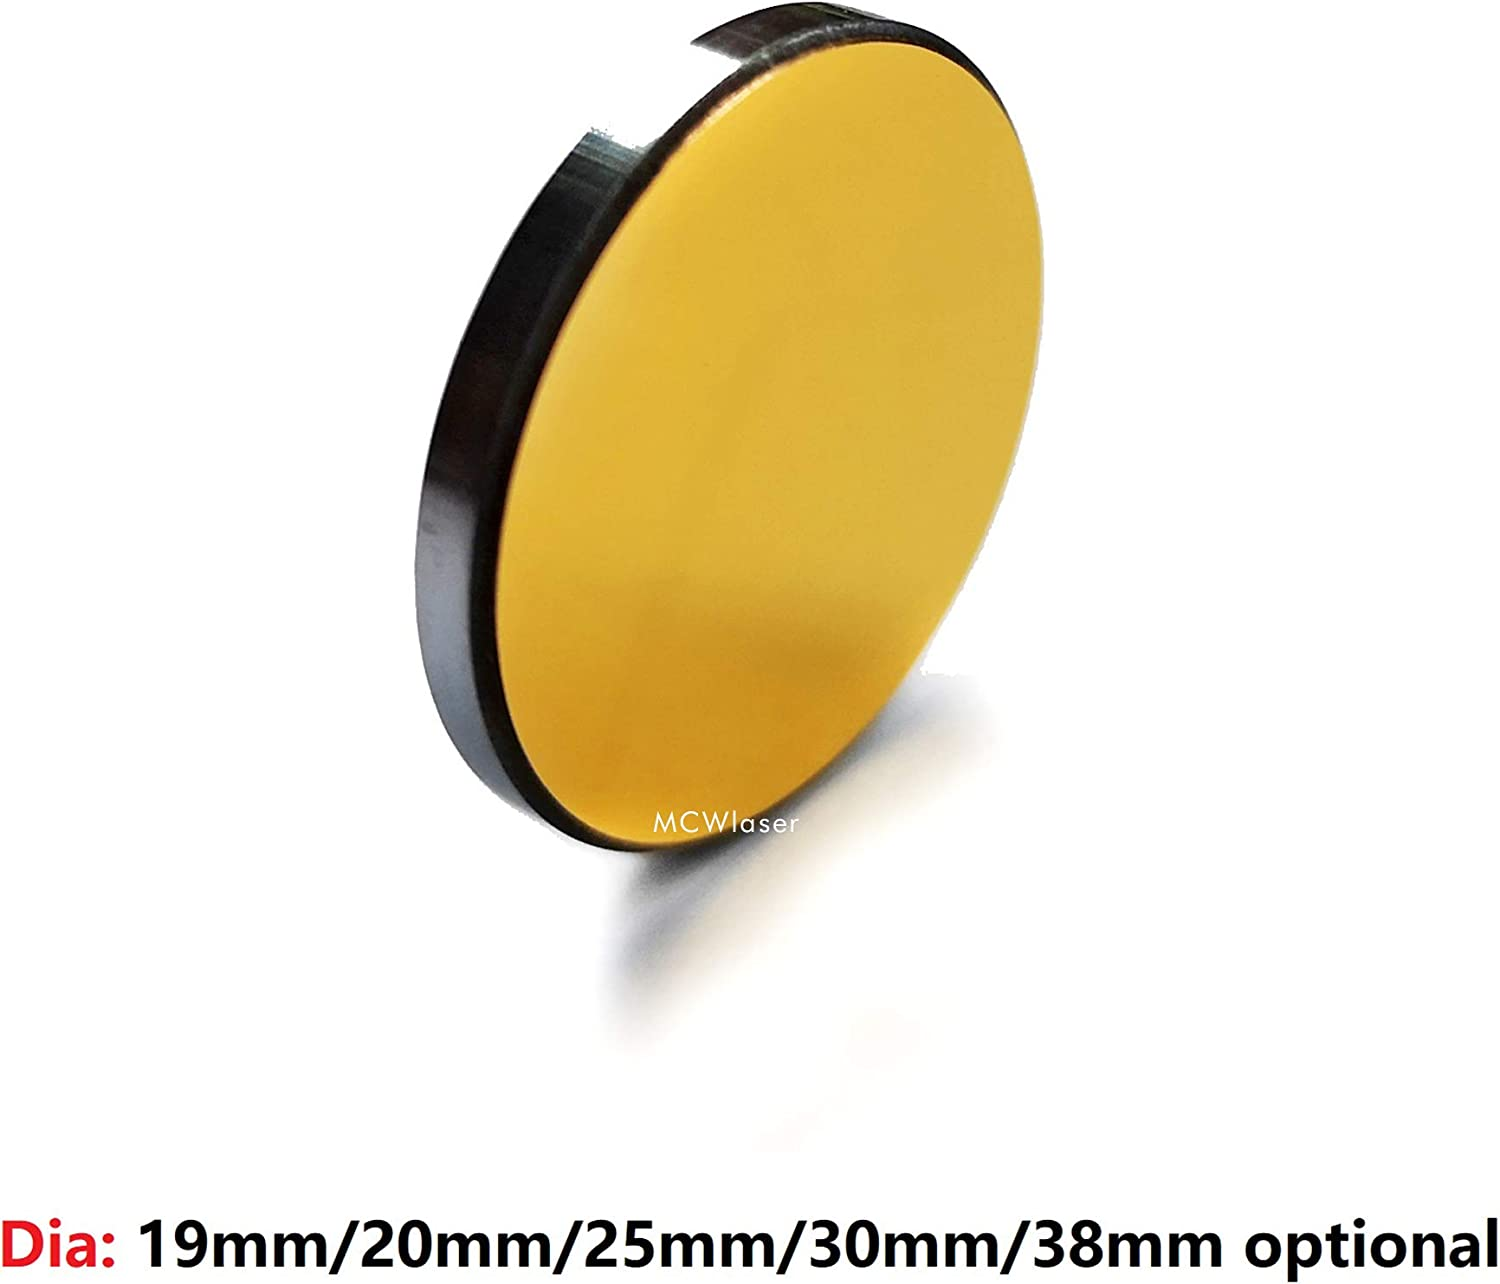 MCWlaser 3PCS Si Mirror Coated Gold Dia:25mm for CO2 Laser Engraving Cutting 40W-150W